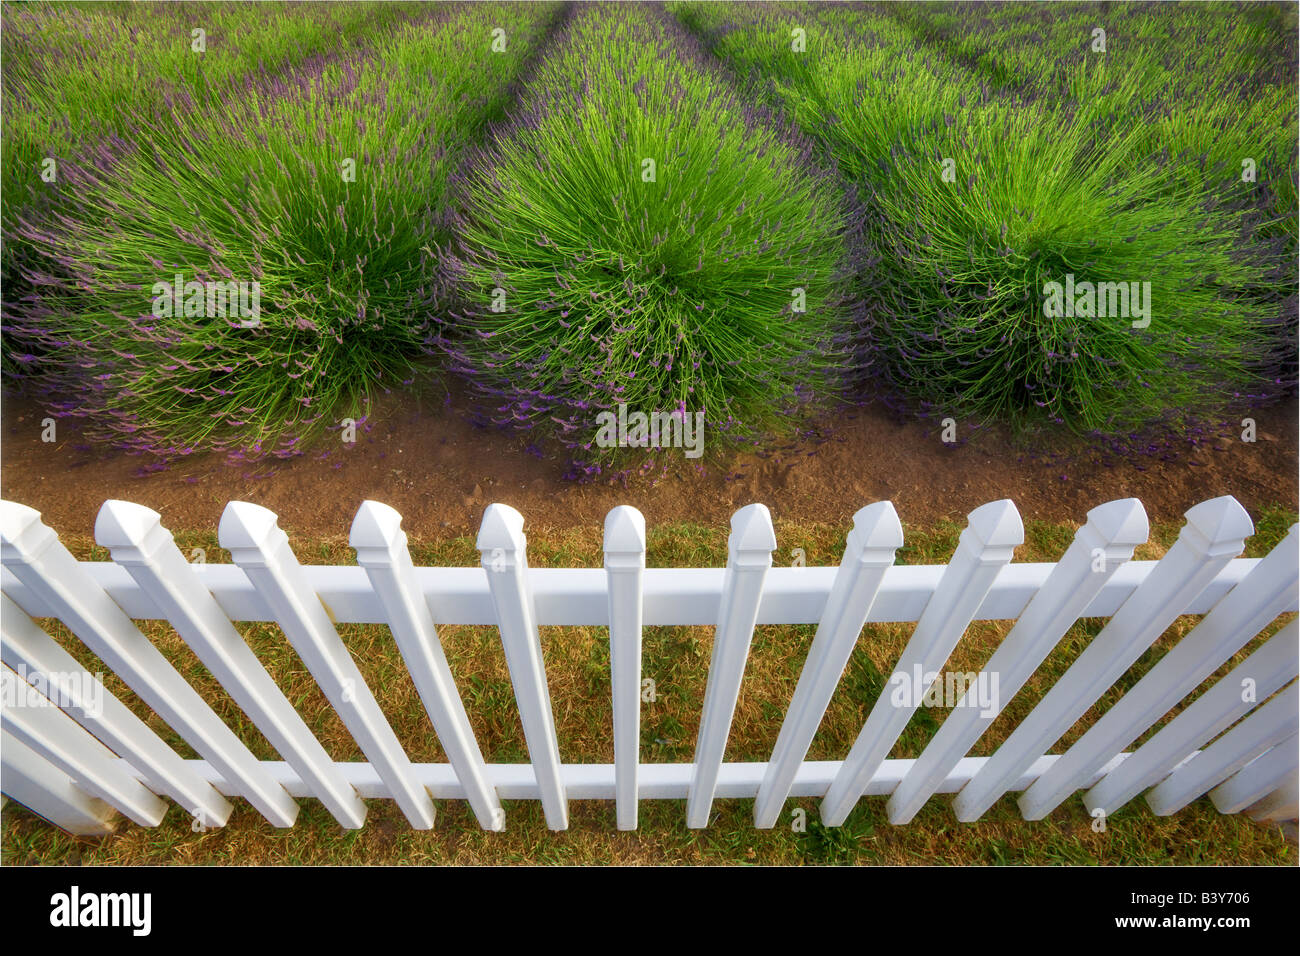 Fence with lavender Jardin du Soleil lavendar farm Washington - Stock Image